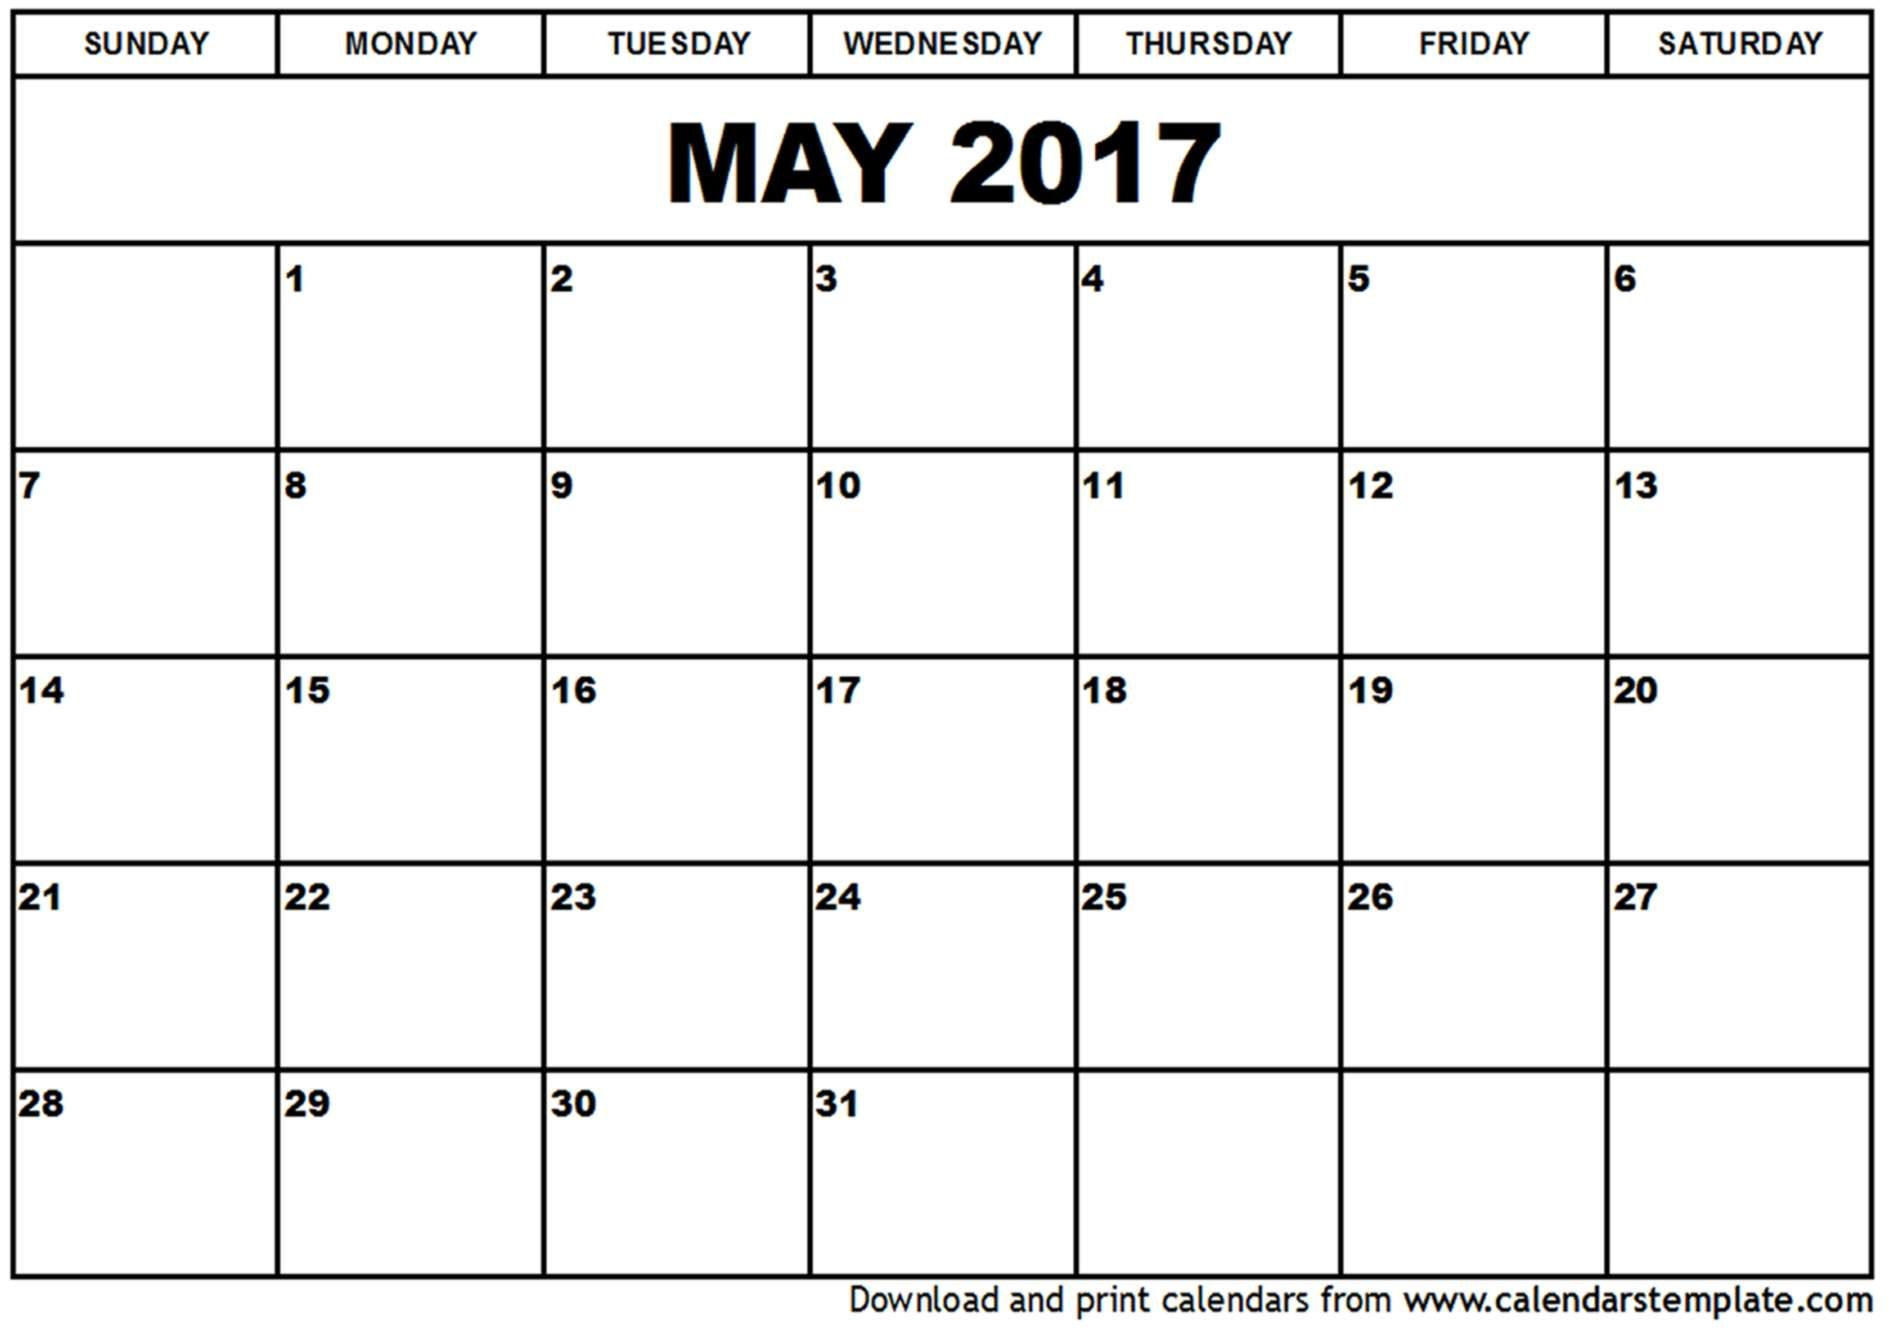 May 2017 calendar template | Organization Ideas | Pinterest ...